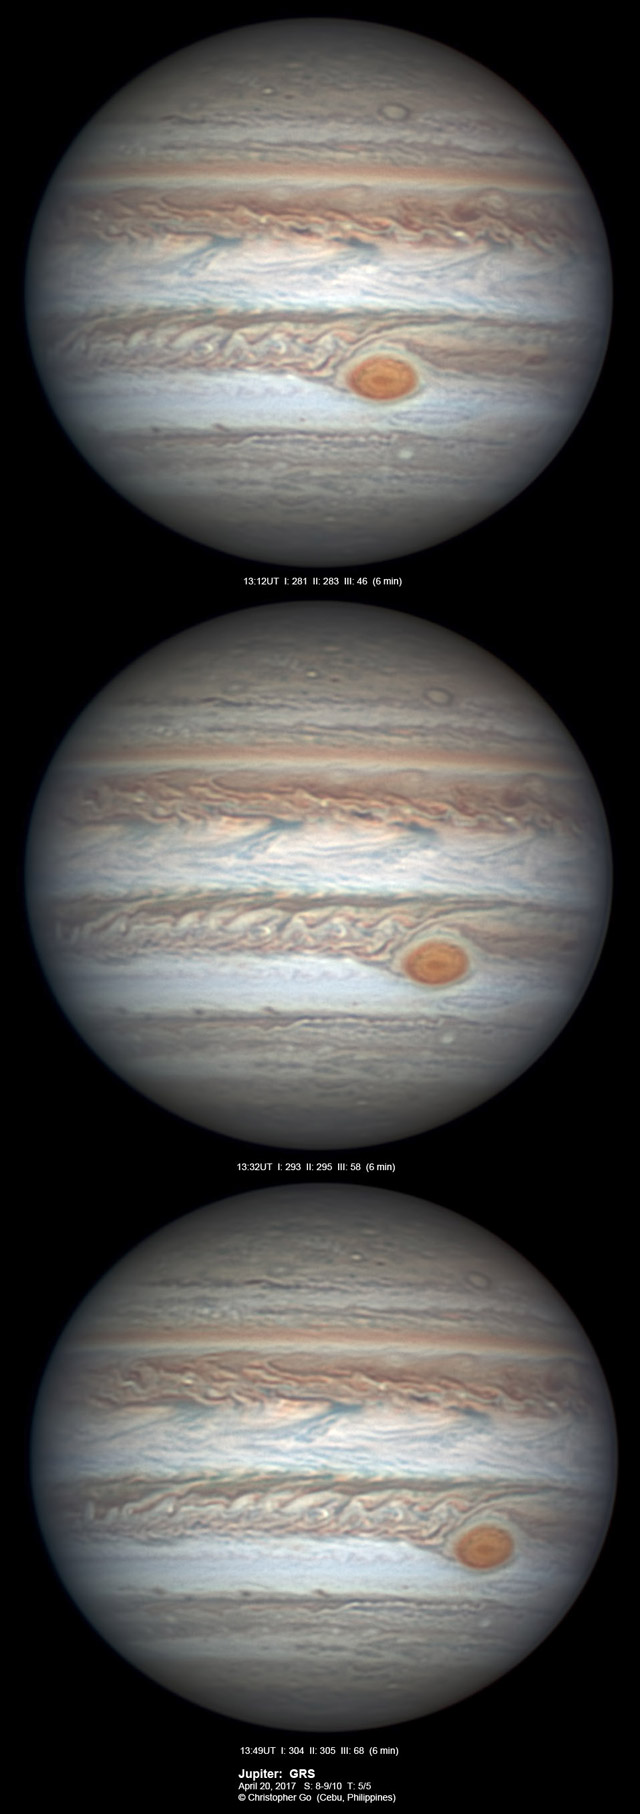 Jupiter on April 20, 2017